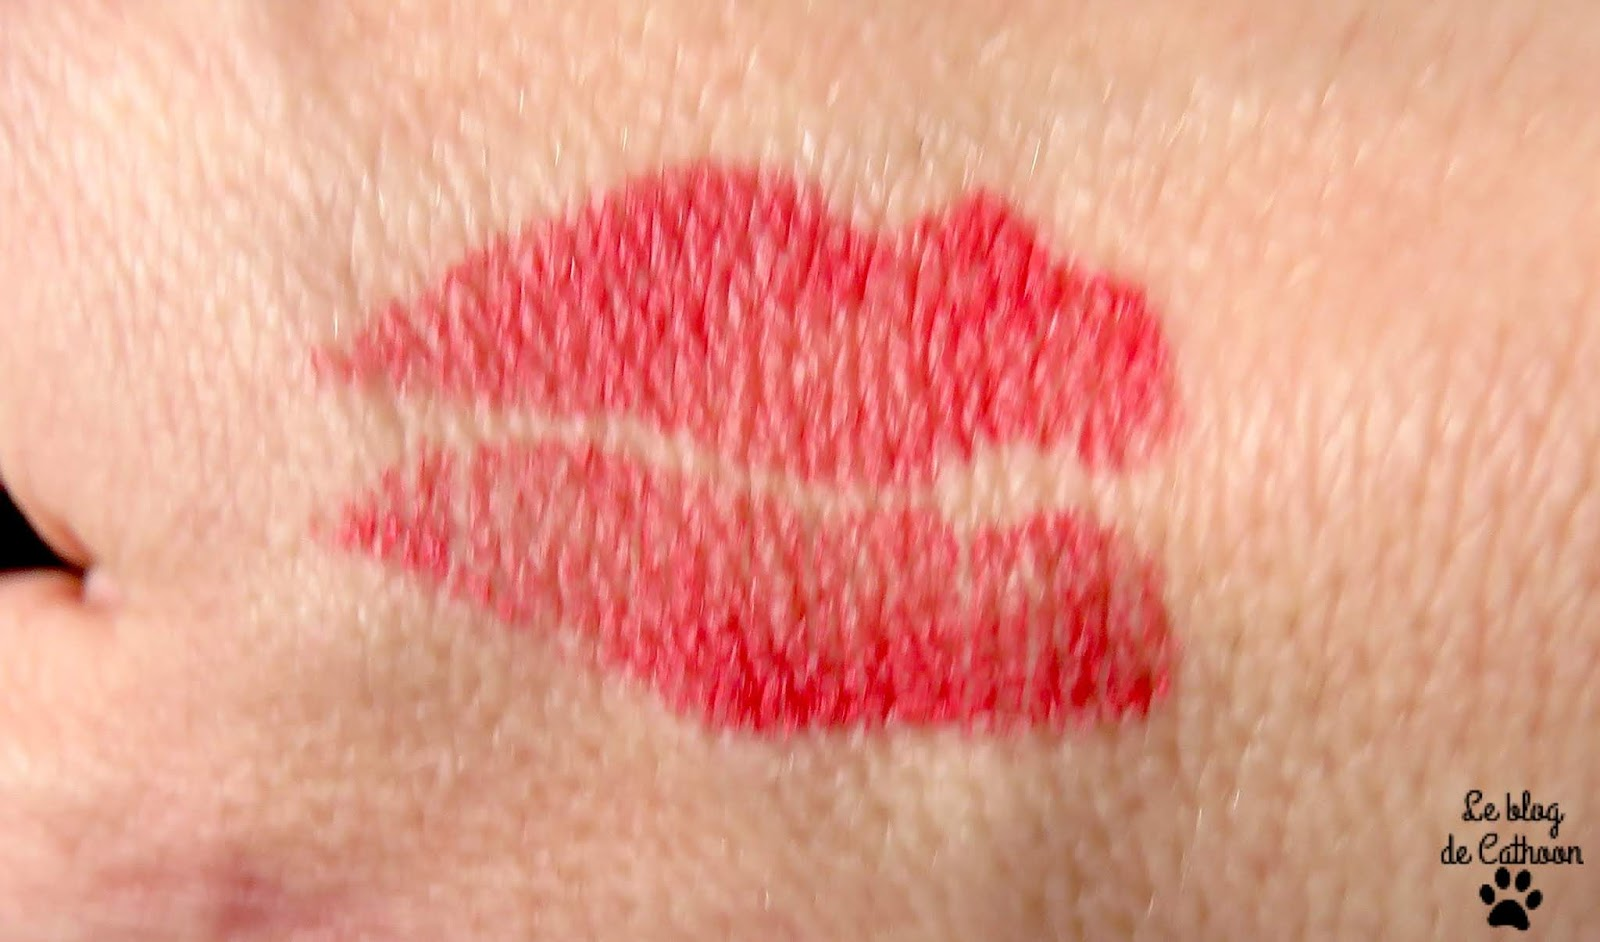 Rouge à Lèvres Liquide Natural & Vegan - 784 Rose Corail 'Lead The Game' - All Tigers